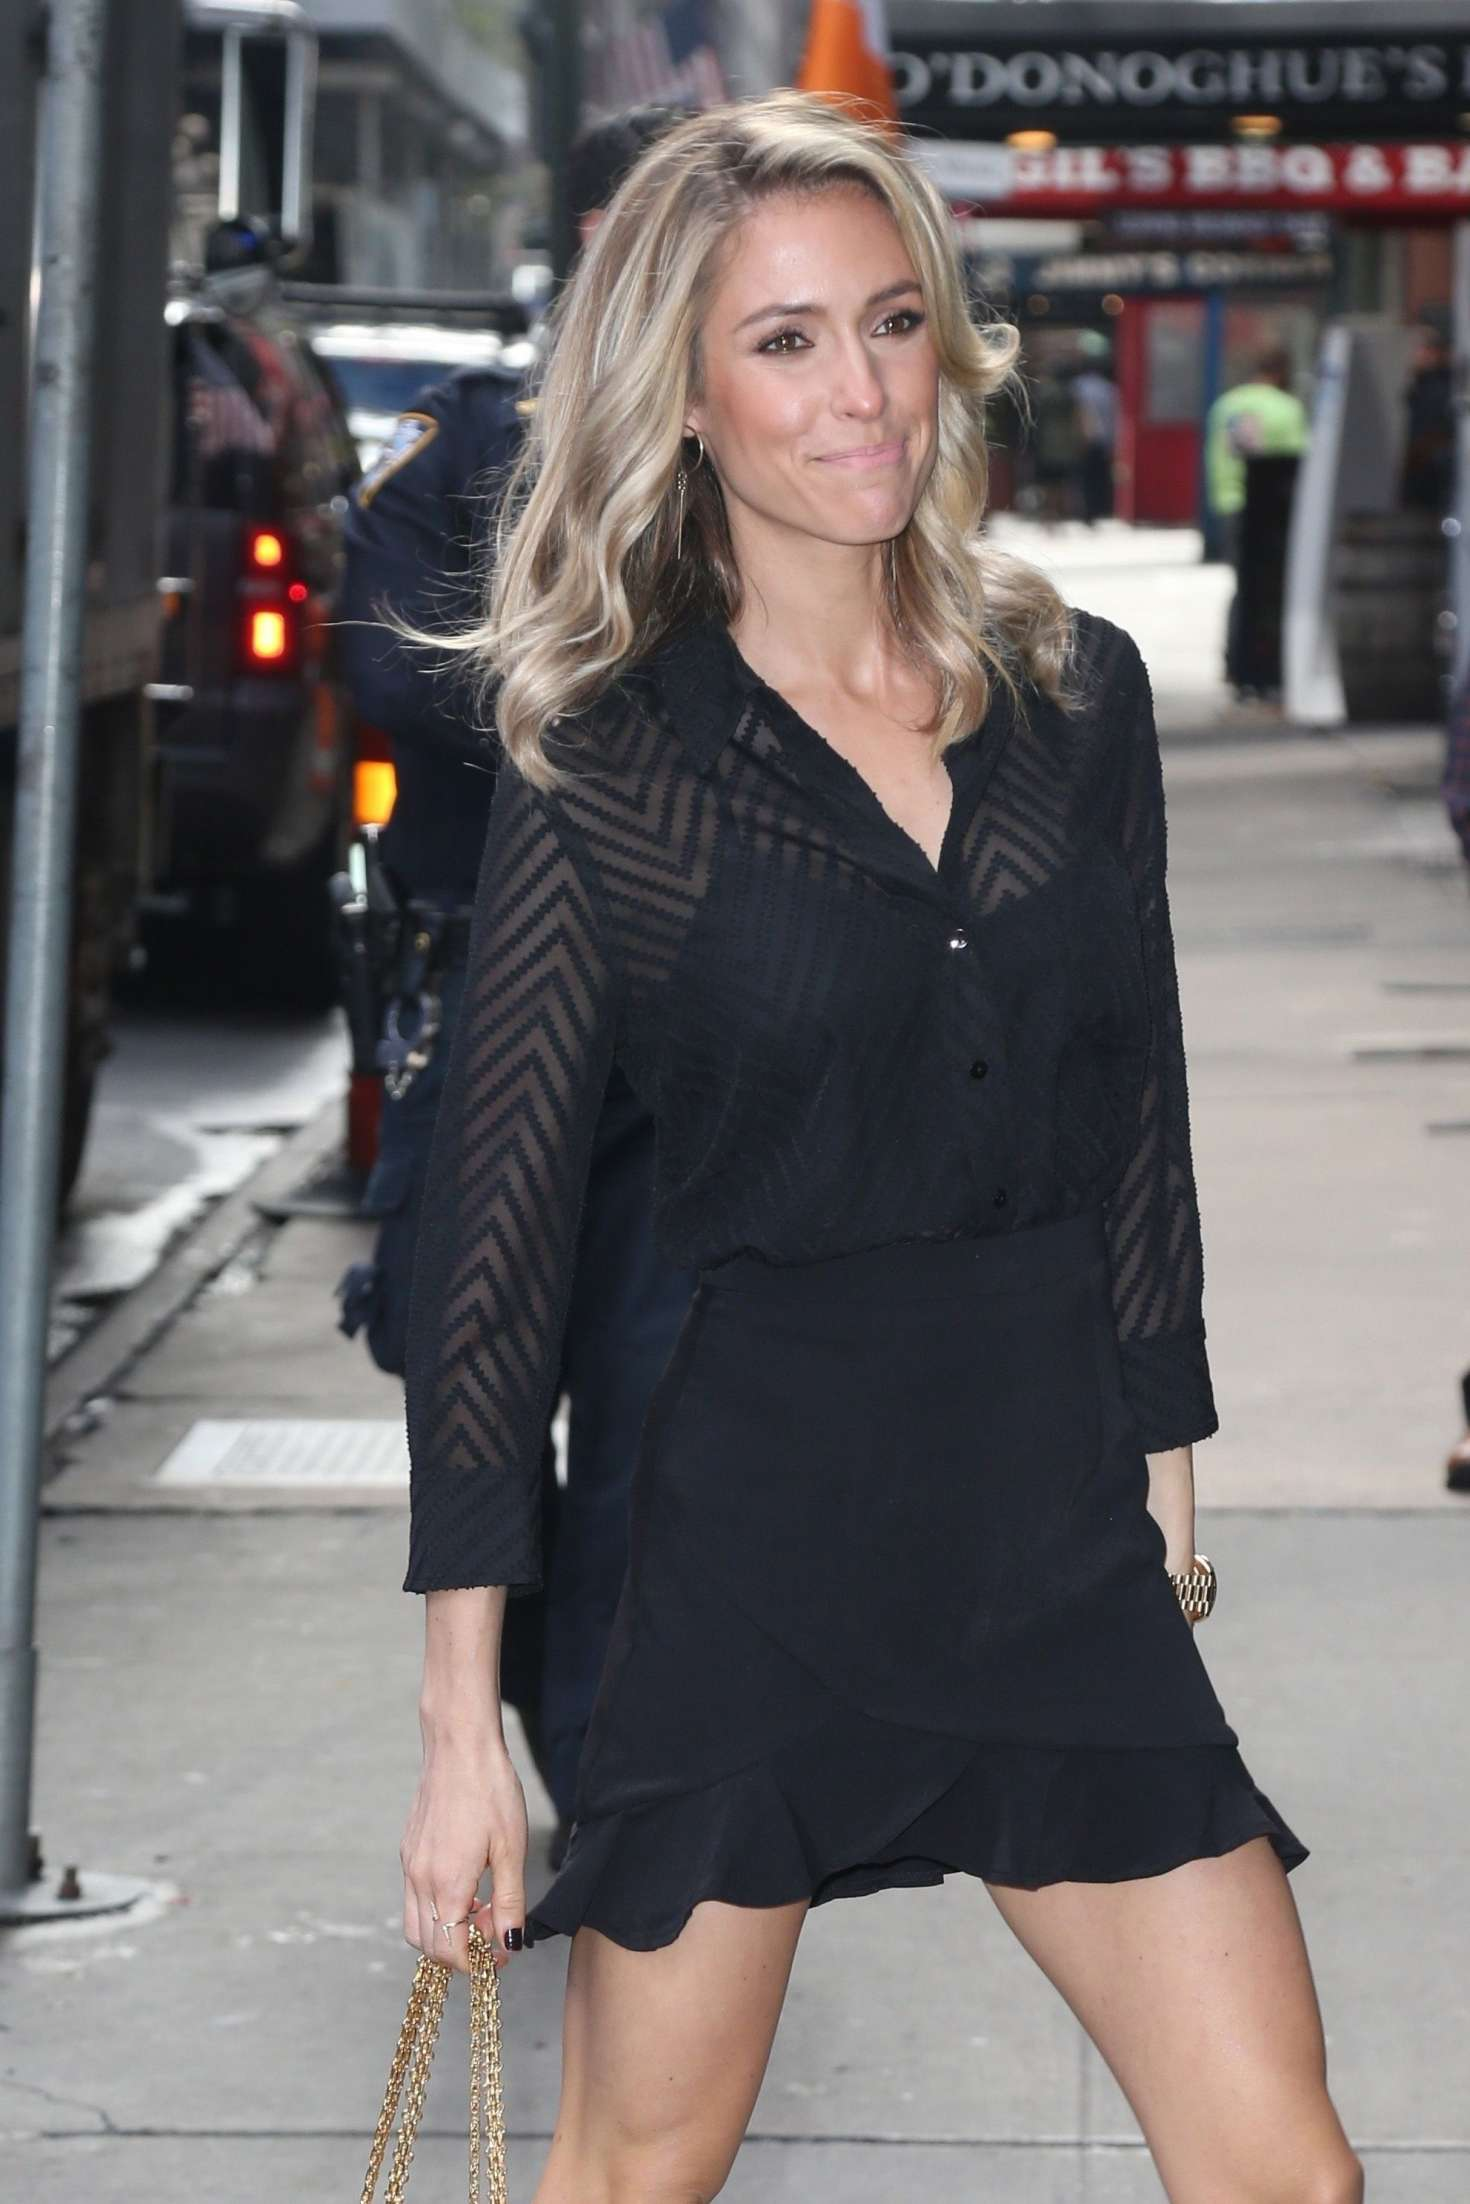 Kristin Cavallari 2019 : Kristin Cavallari: Heads to Good Morning America -08